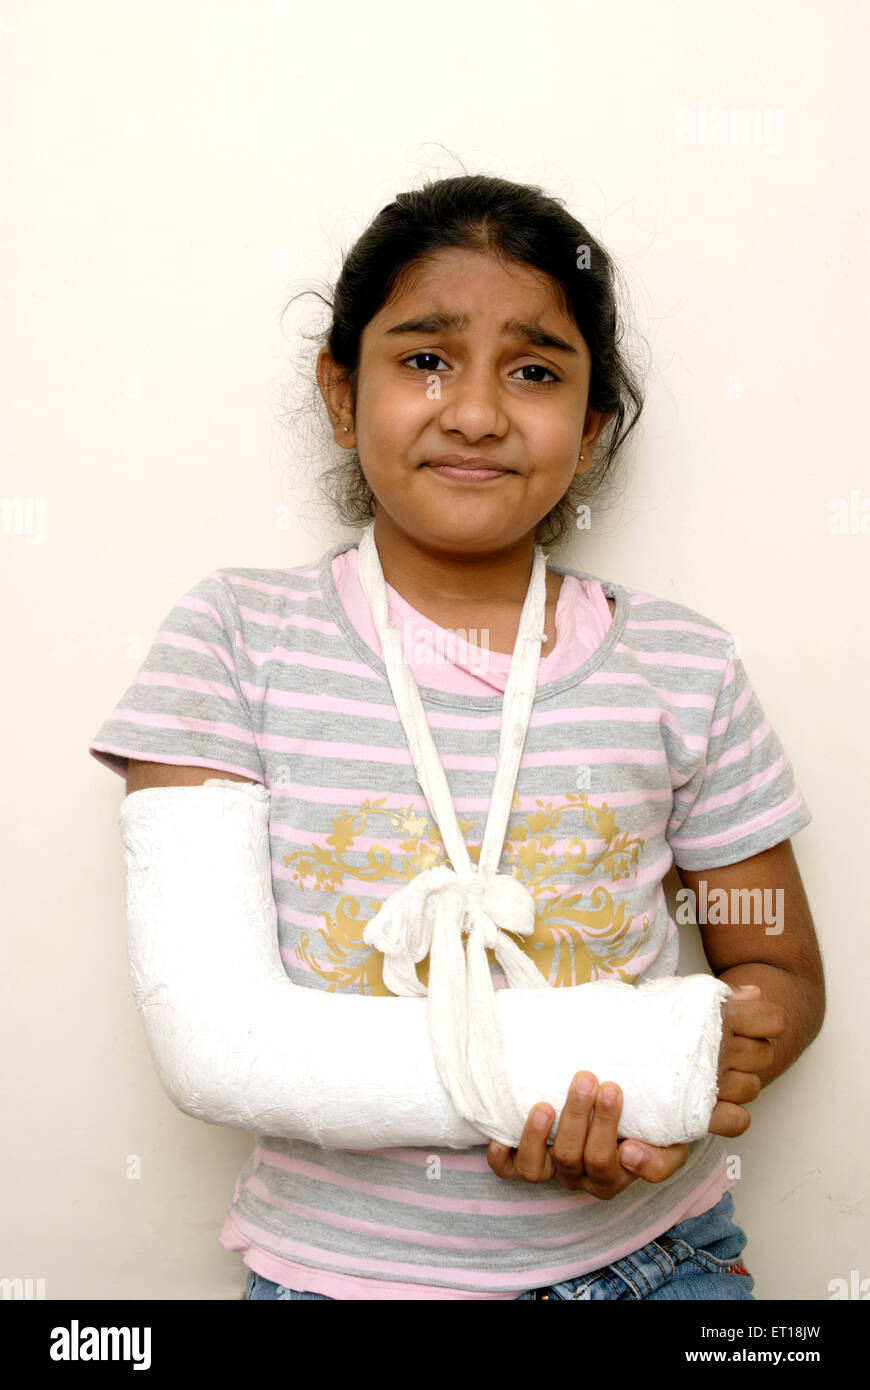 Indian young girl hand plaster fracture India MR#152 - Stock Image